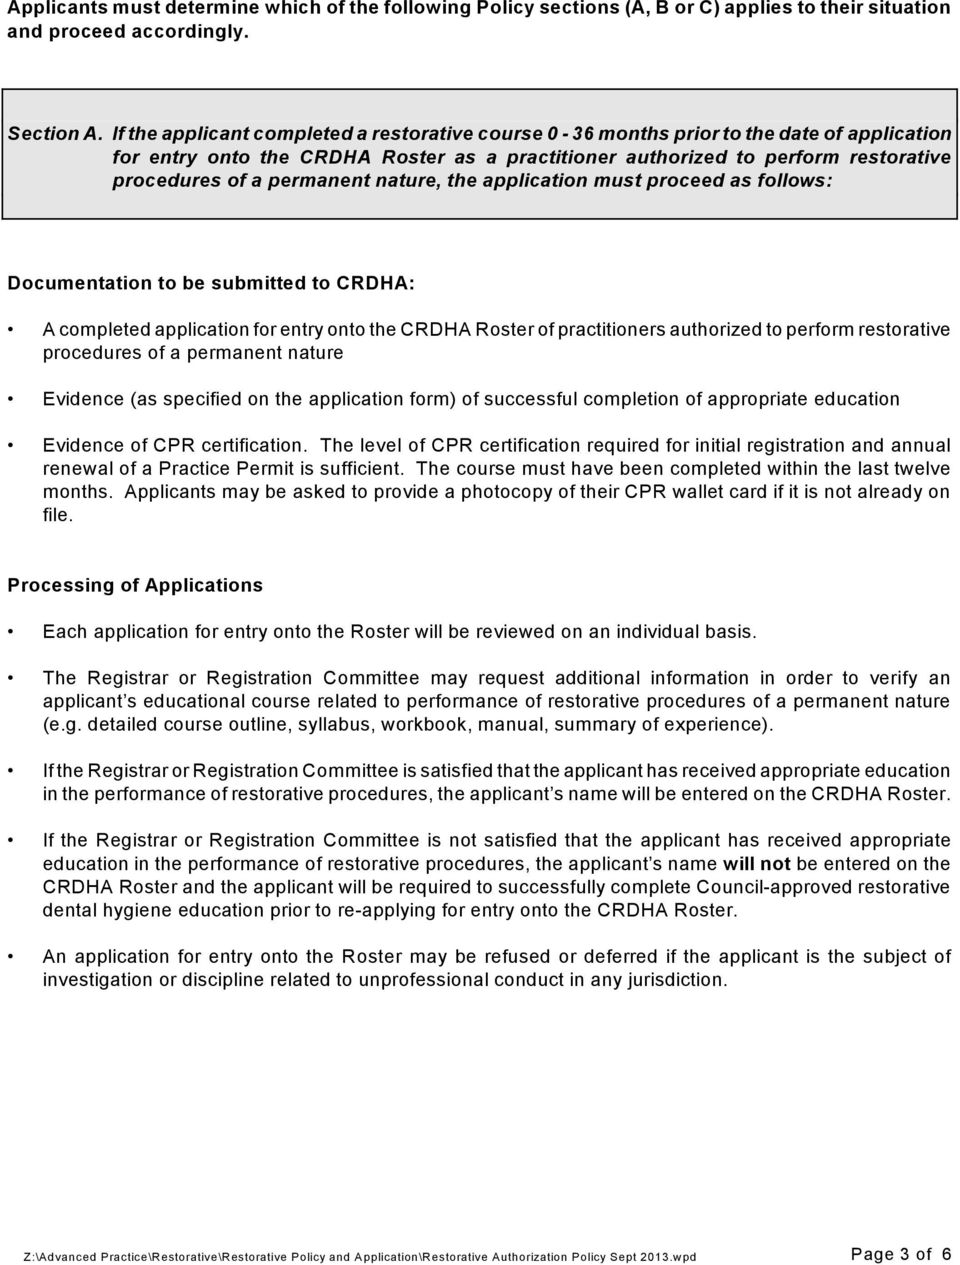 permanent nature, the application must proceed as follows: Documentation to be submitted to CRDHA: A completed application for entry onto the CRDHA Roster of practitioners authorized to perform